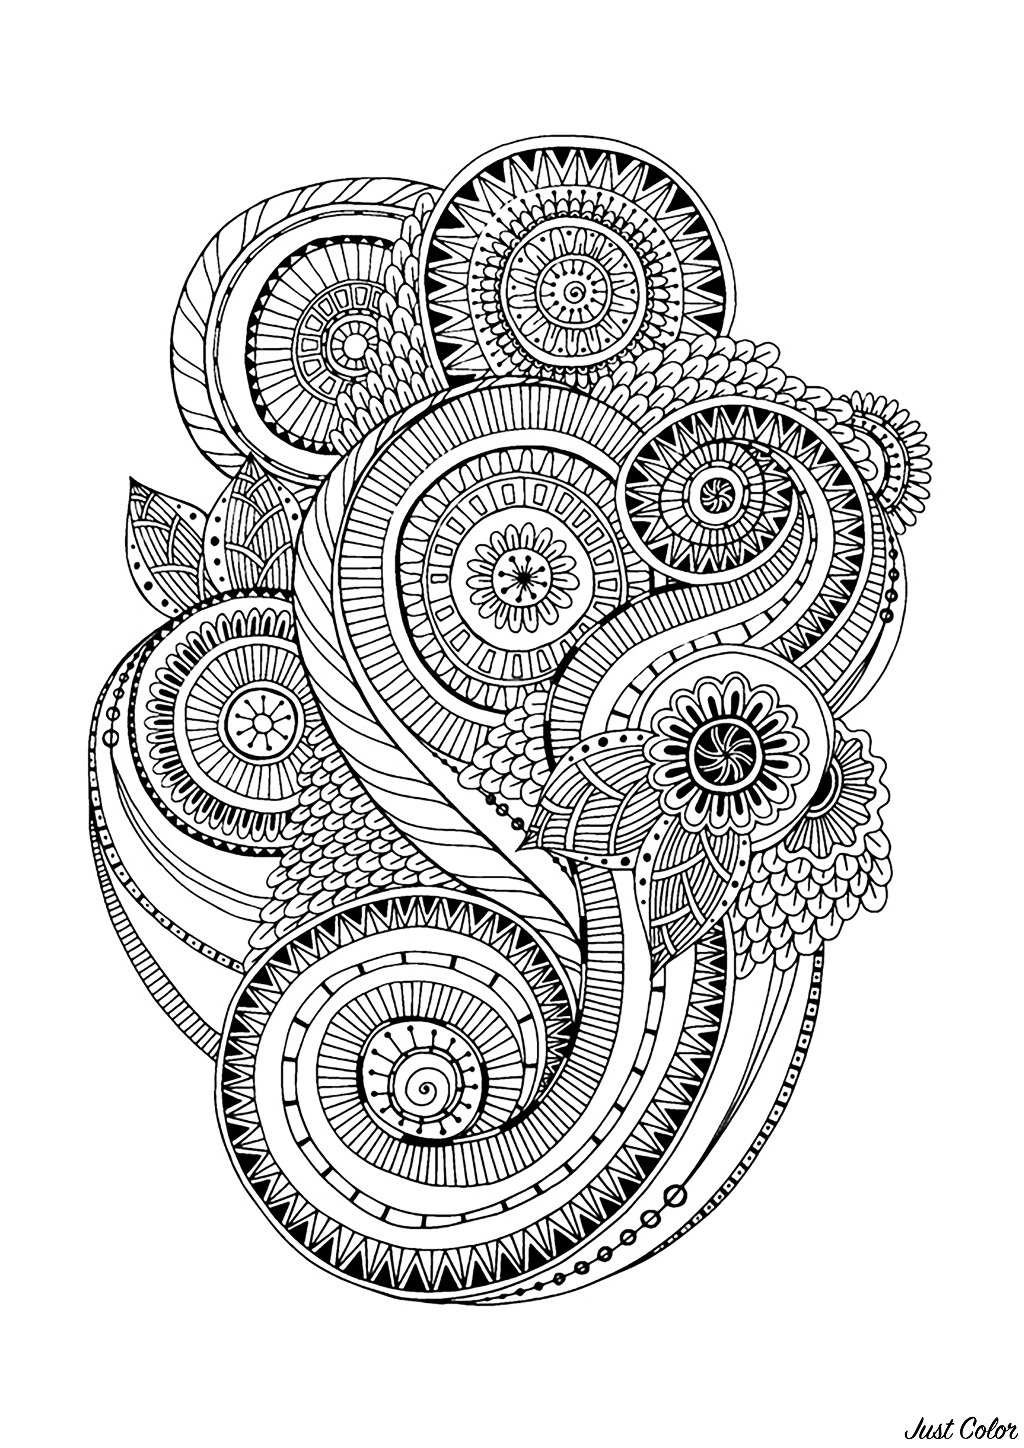 Zen & Anti-stress Coloring page : Abstract pattern inspired by flowers : n°2